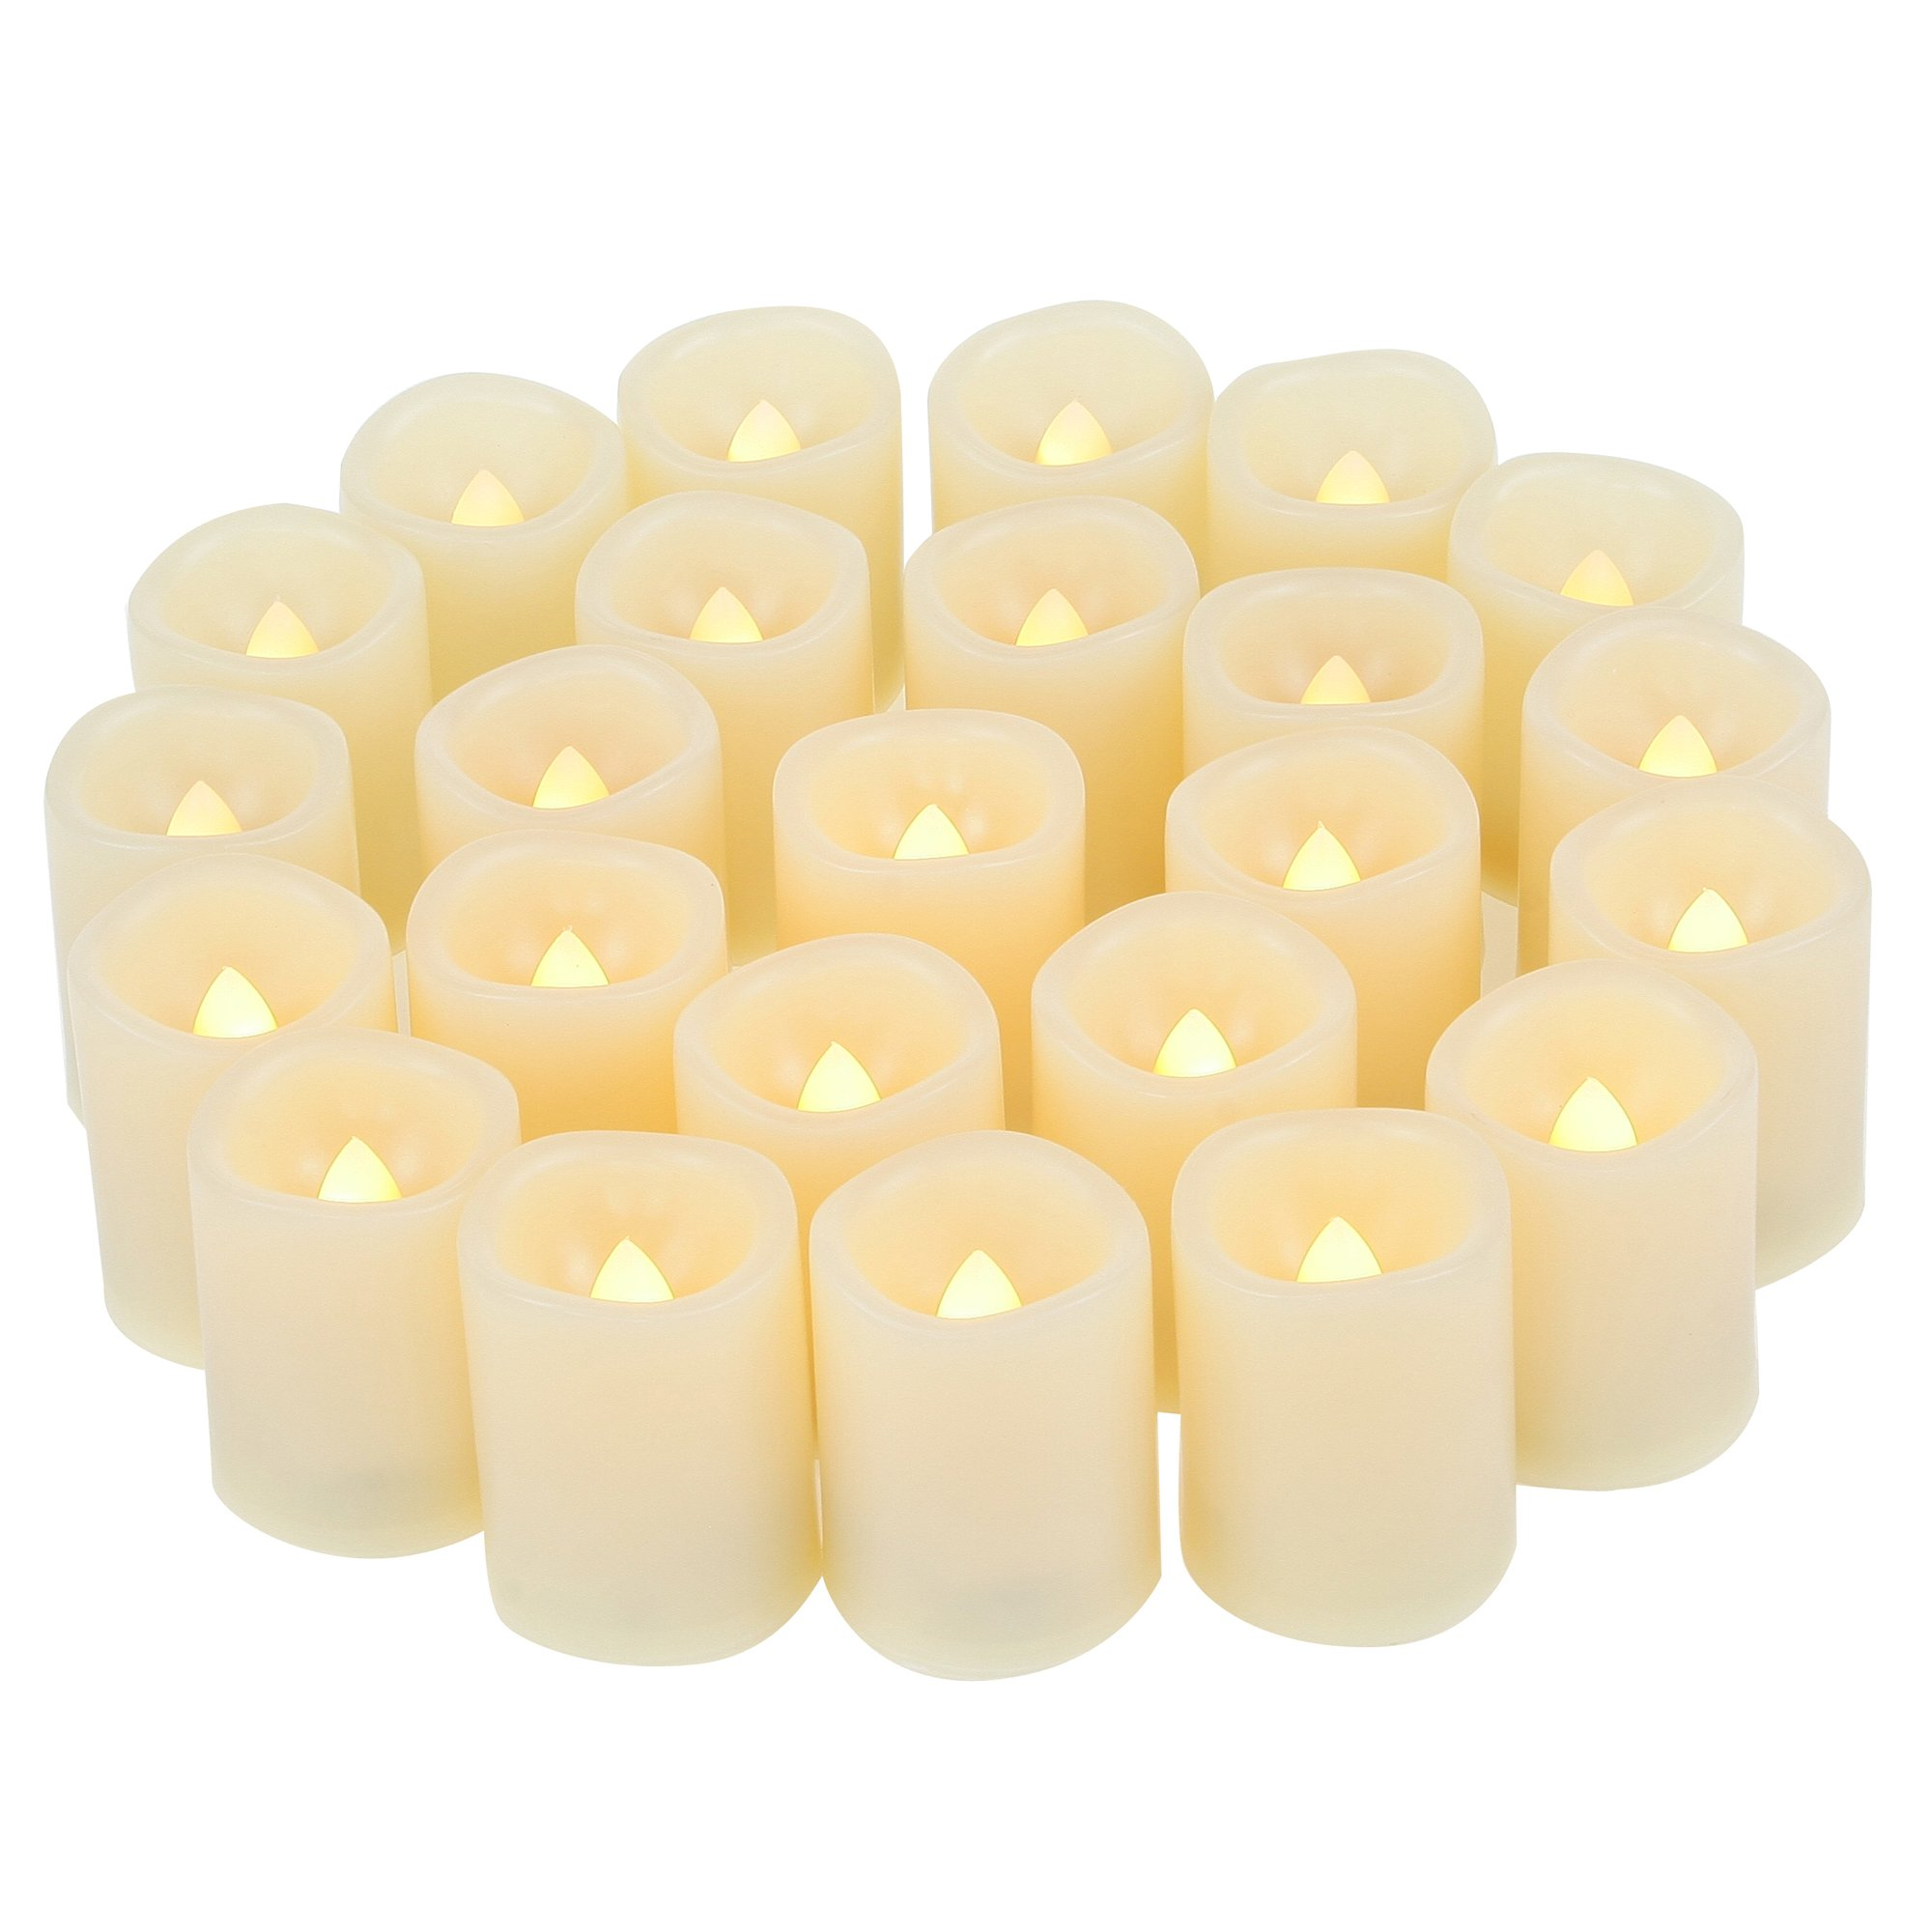 Candle Choice Set of 24 Premium Flameless Votive Candles, Battery-Operated, LED Candles, Long Battery Life 120+ Hours, Battery Included.